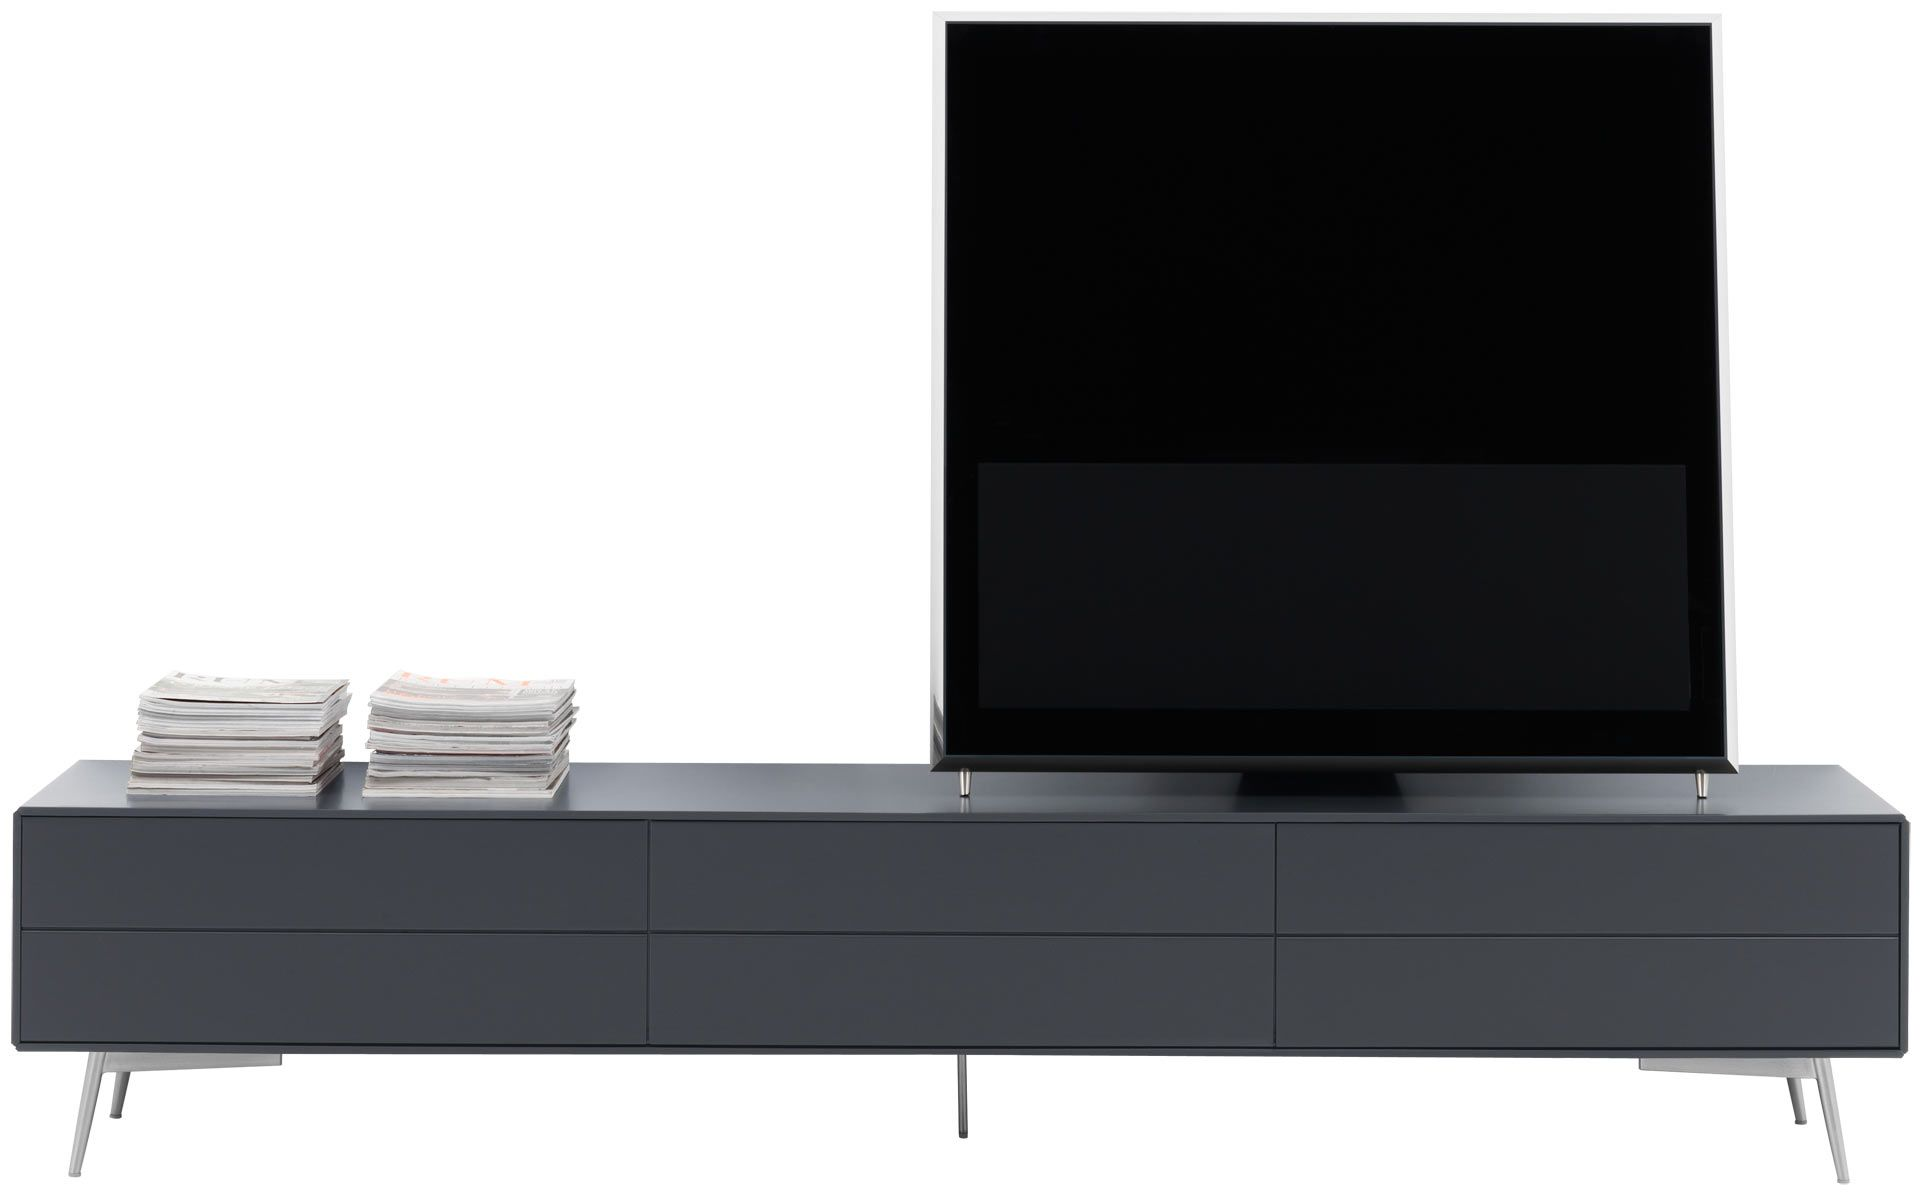 Modern Media Unit modern media units - quality from boconcept £1195 | cabinets